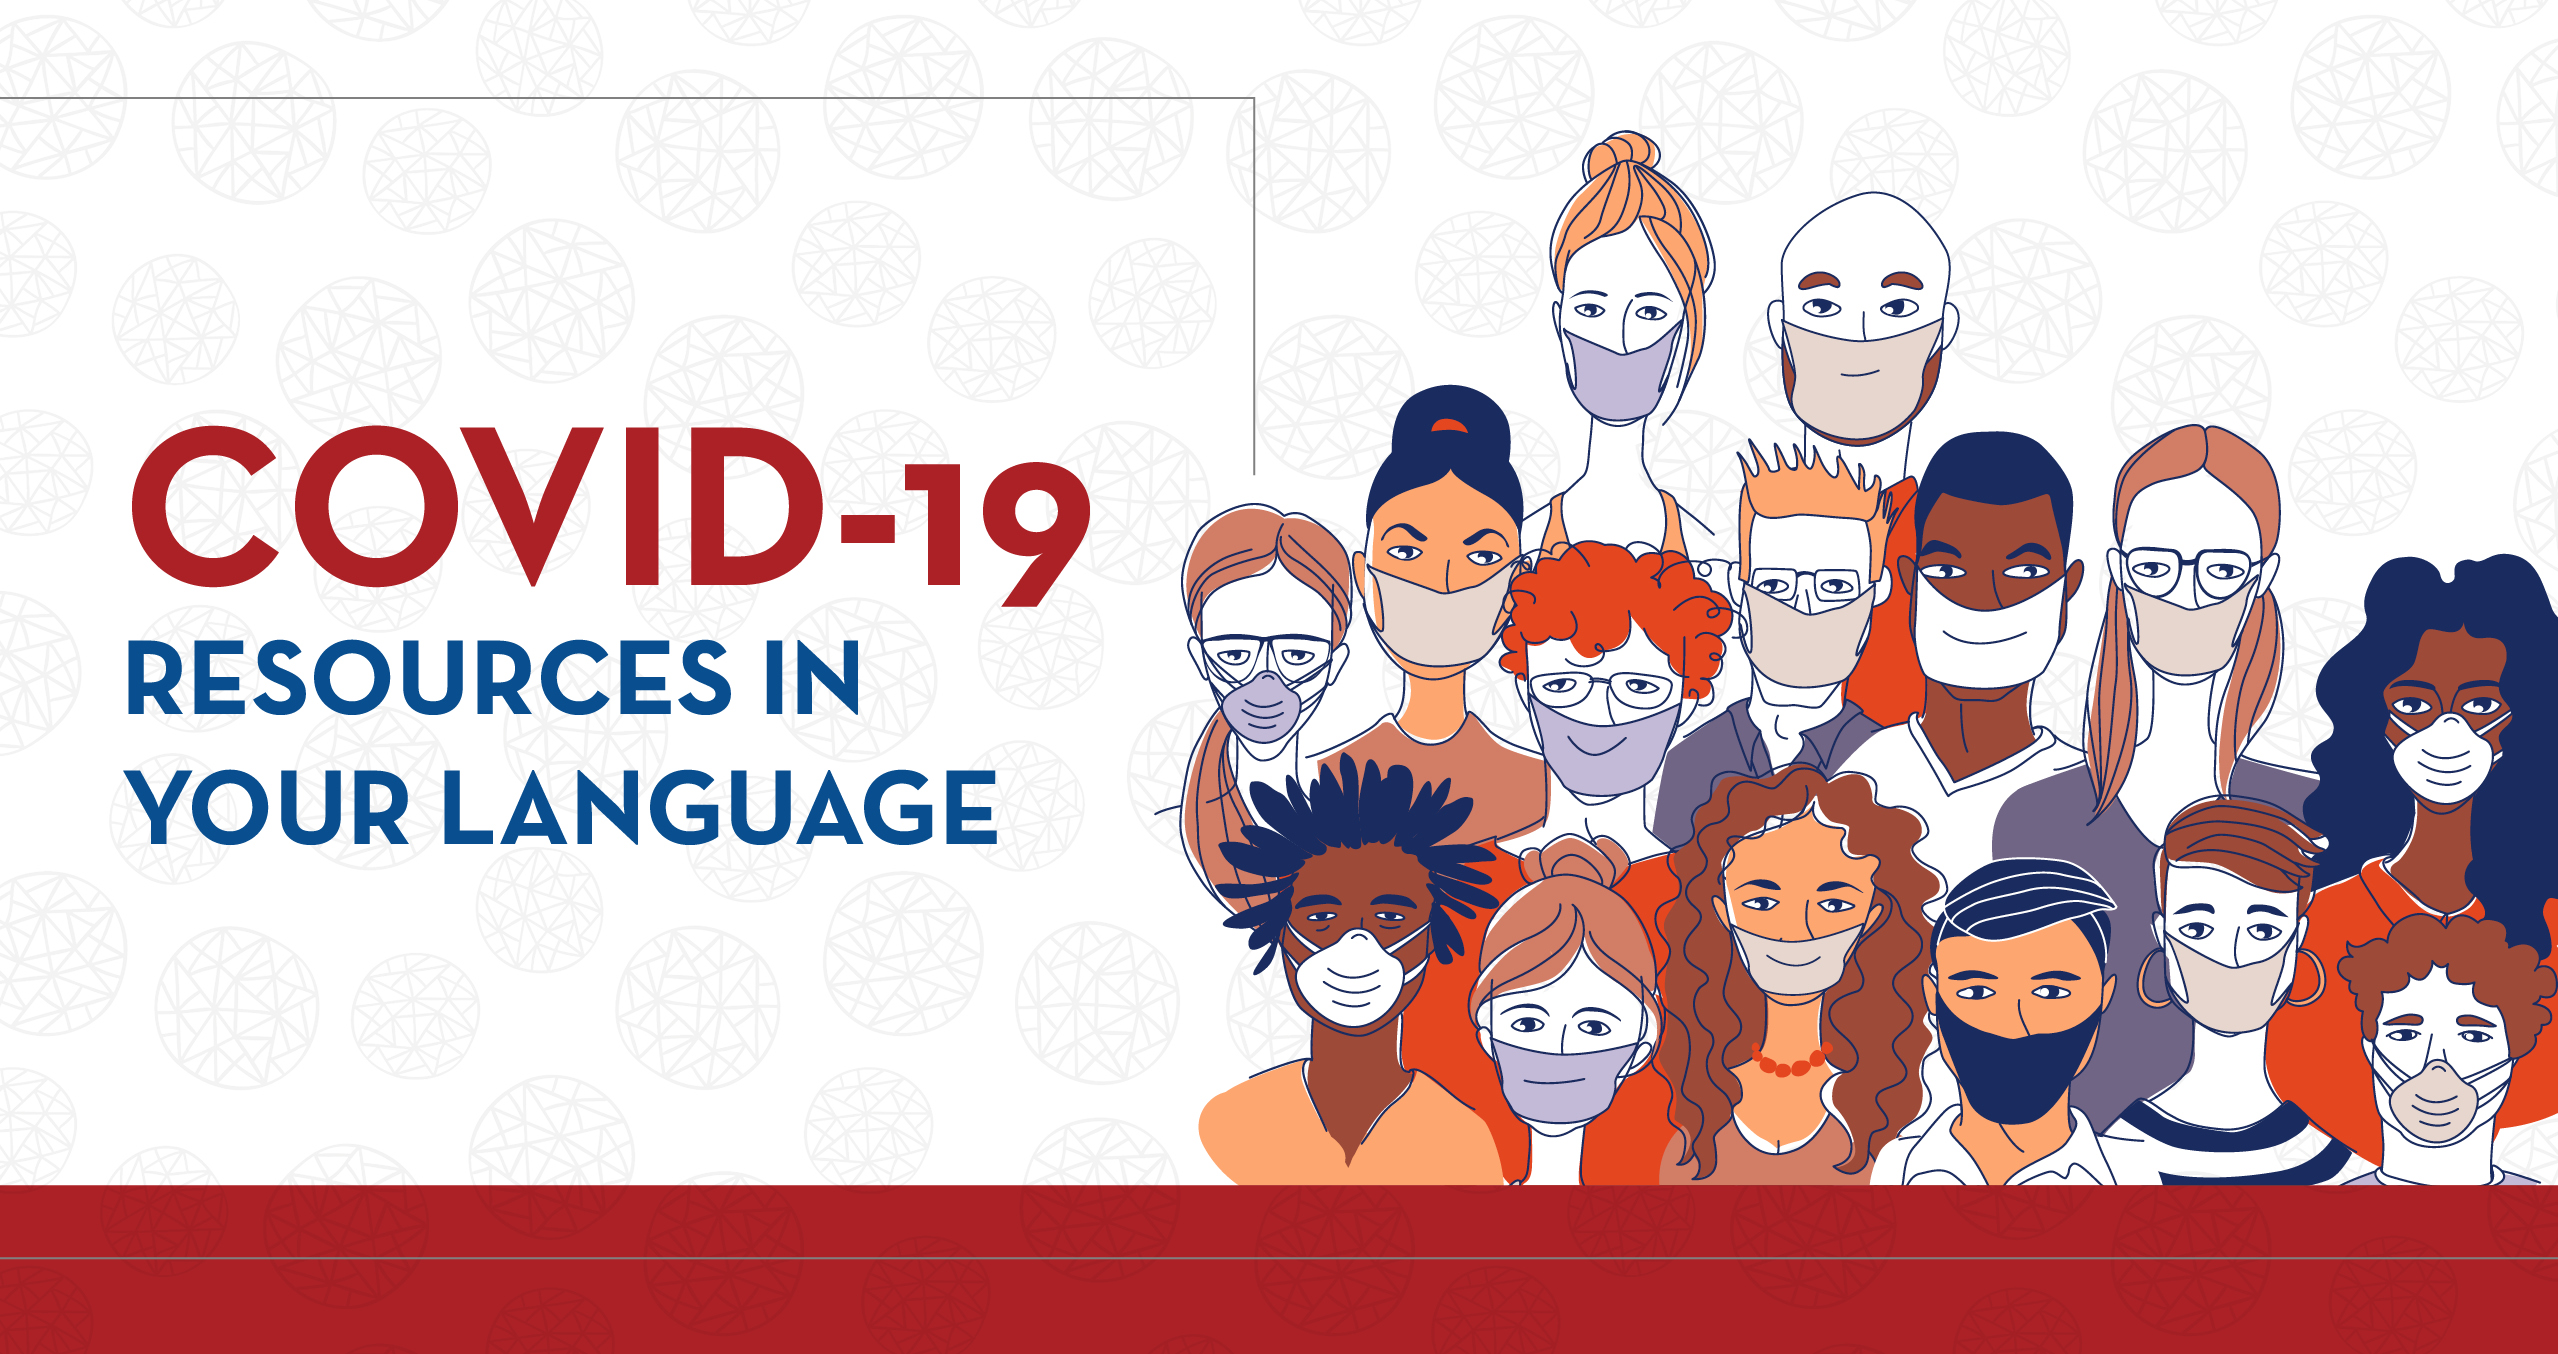 COVID-19 Resources in Your Language